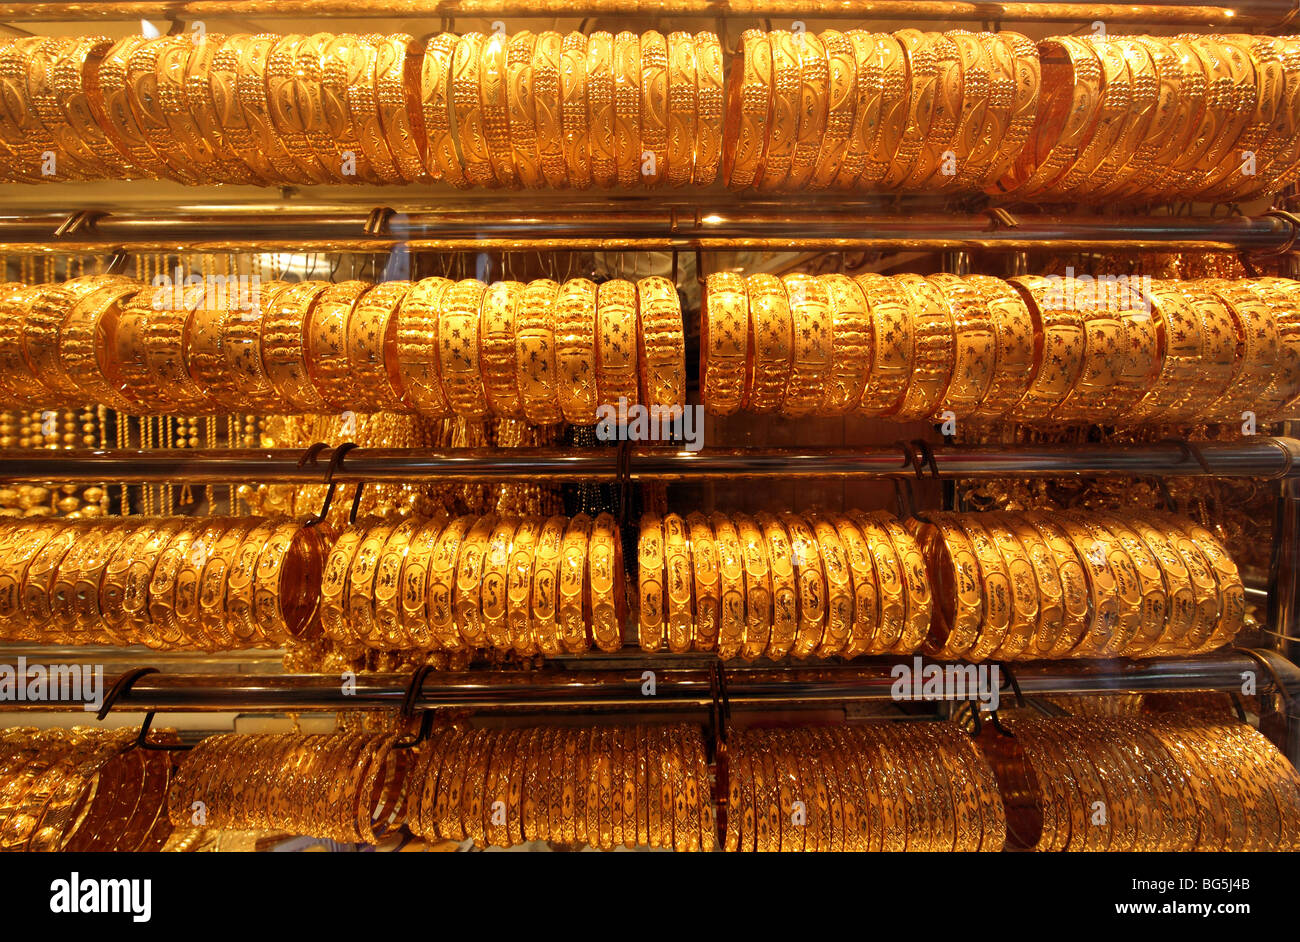 Arab Jewellery Stock Photos & Arab Jewellery Stock Images - Alamy